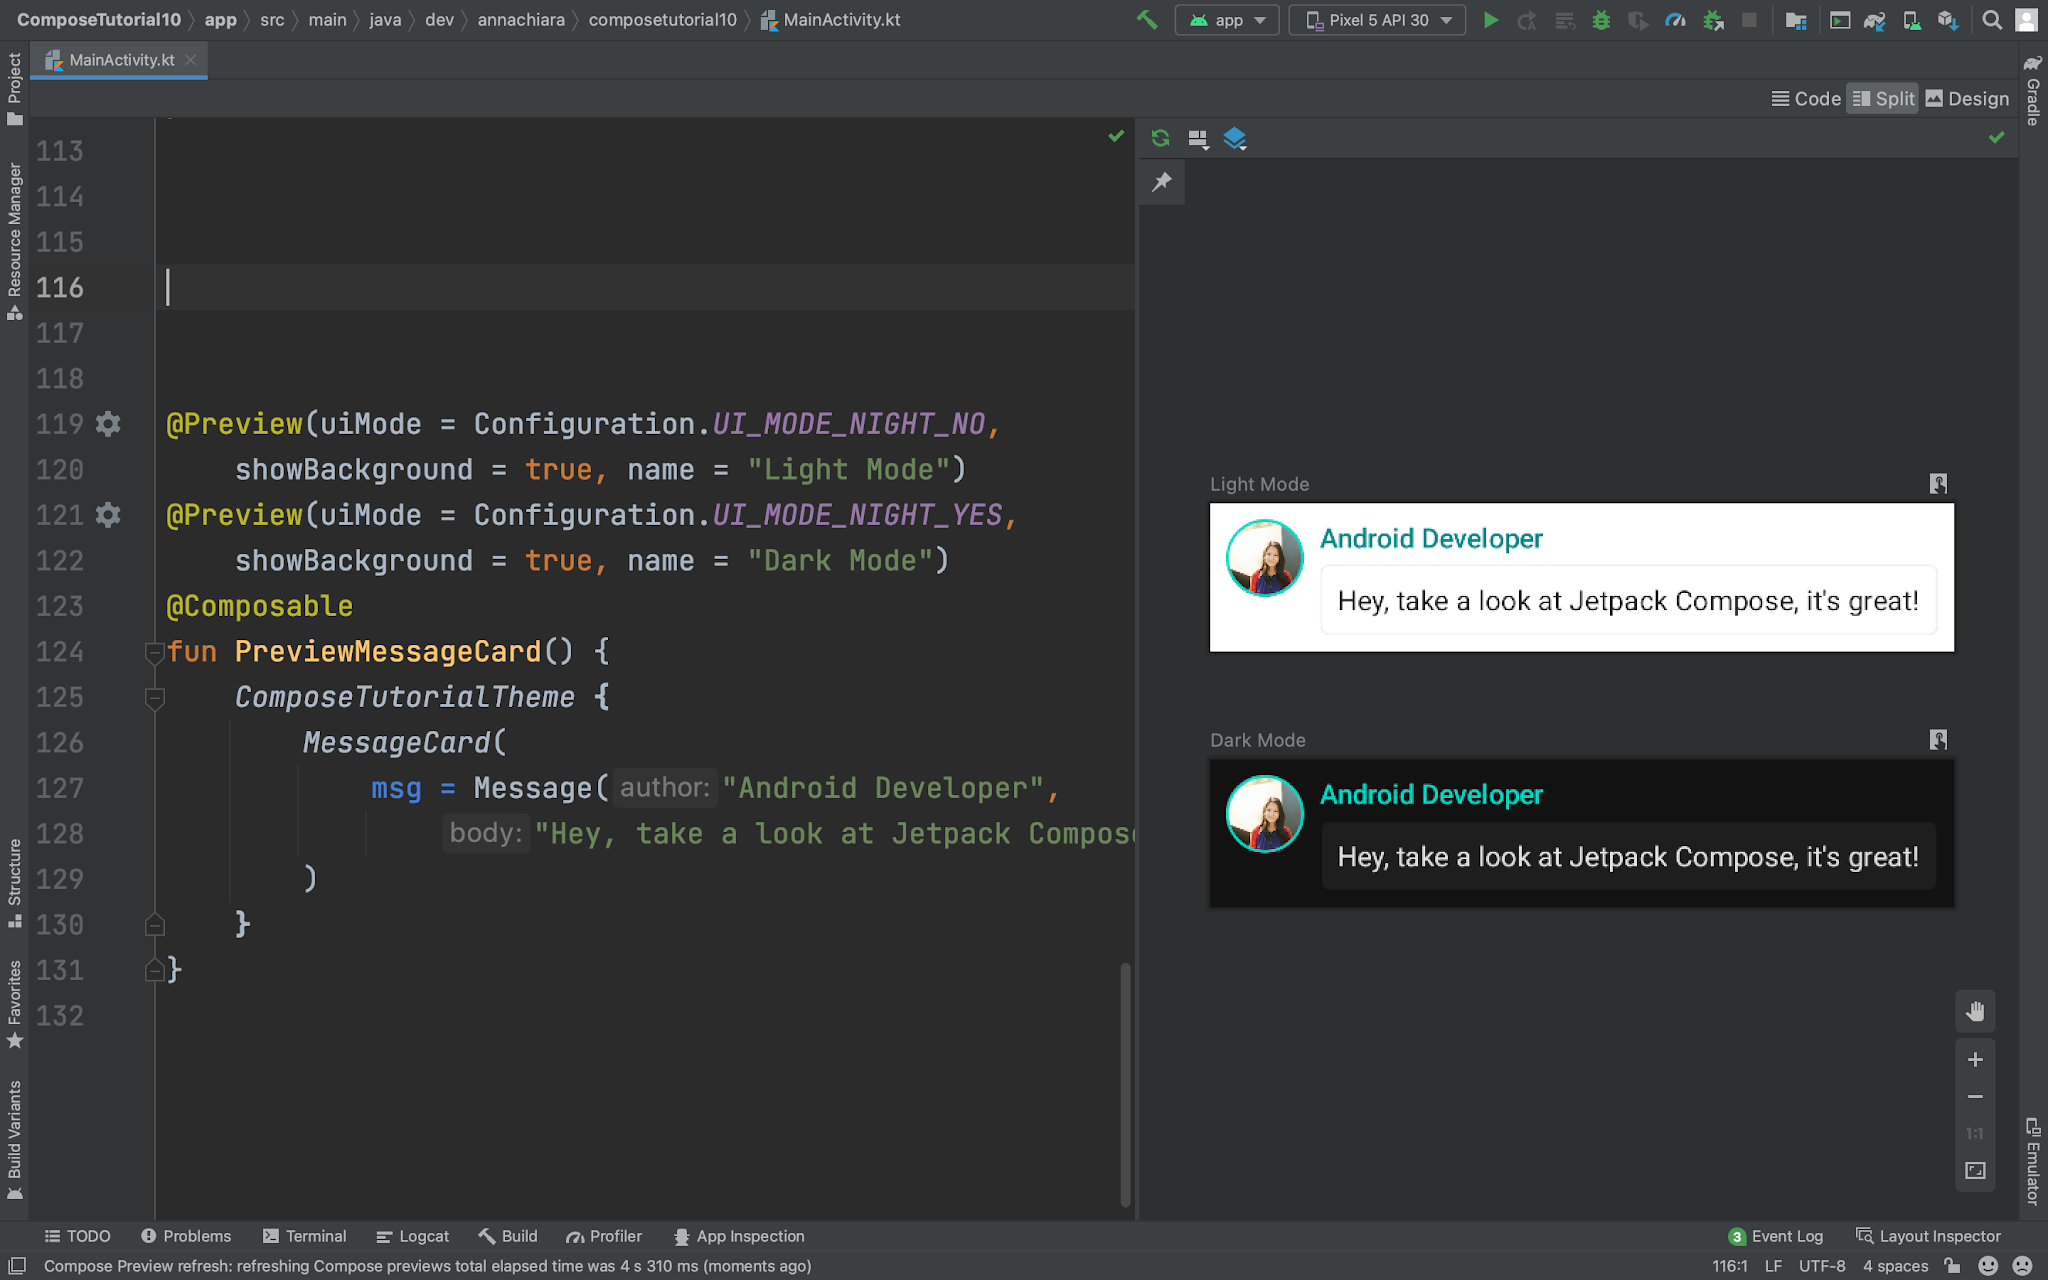 jetpack compose for Android studio